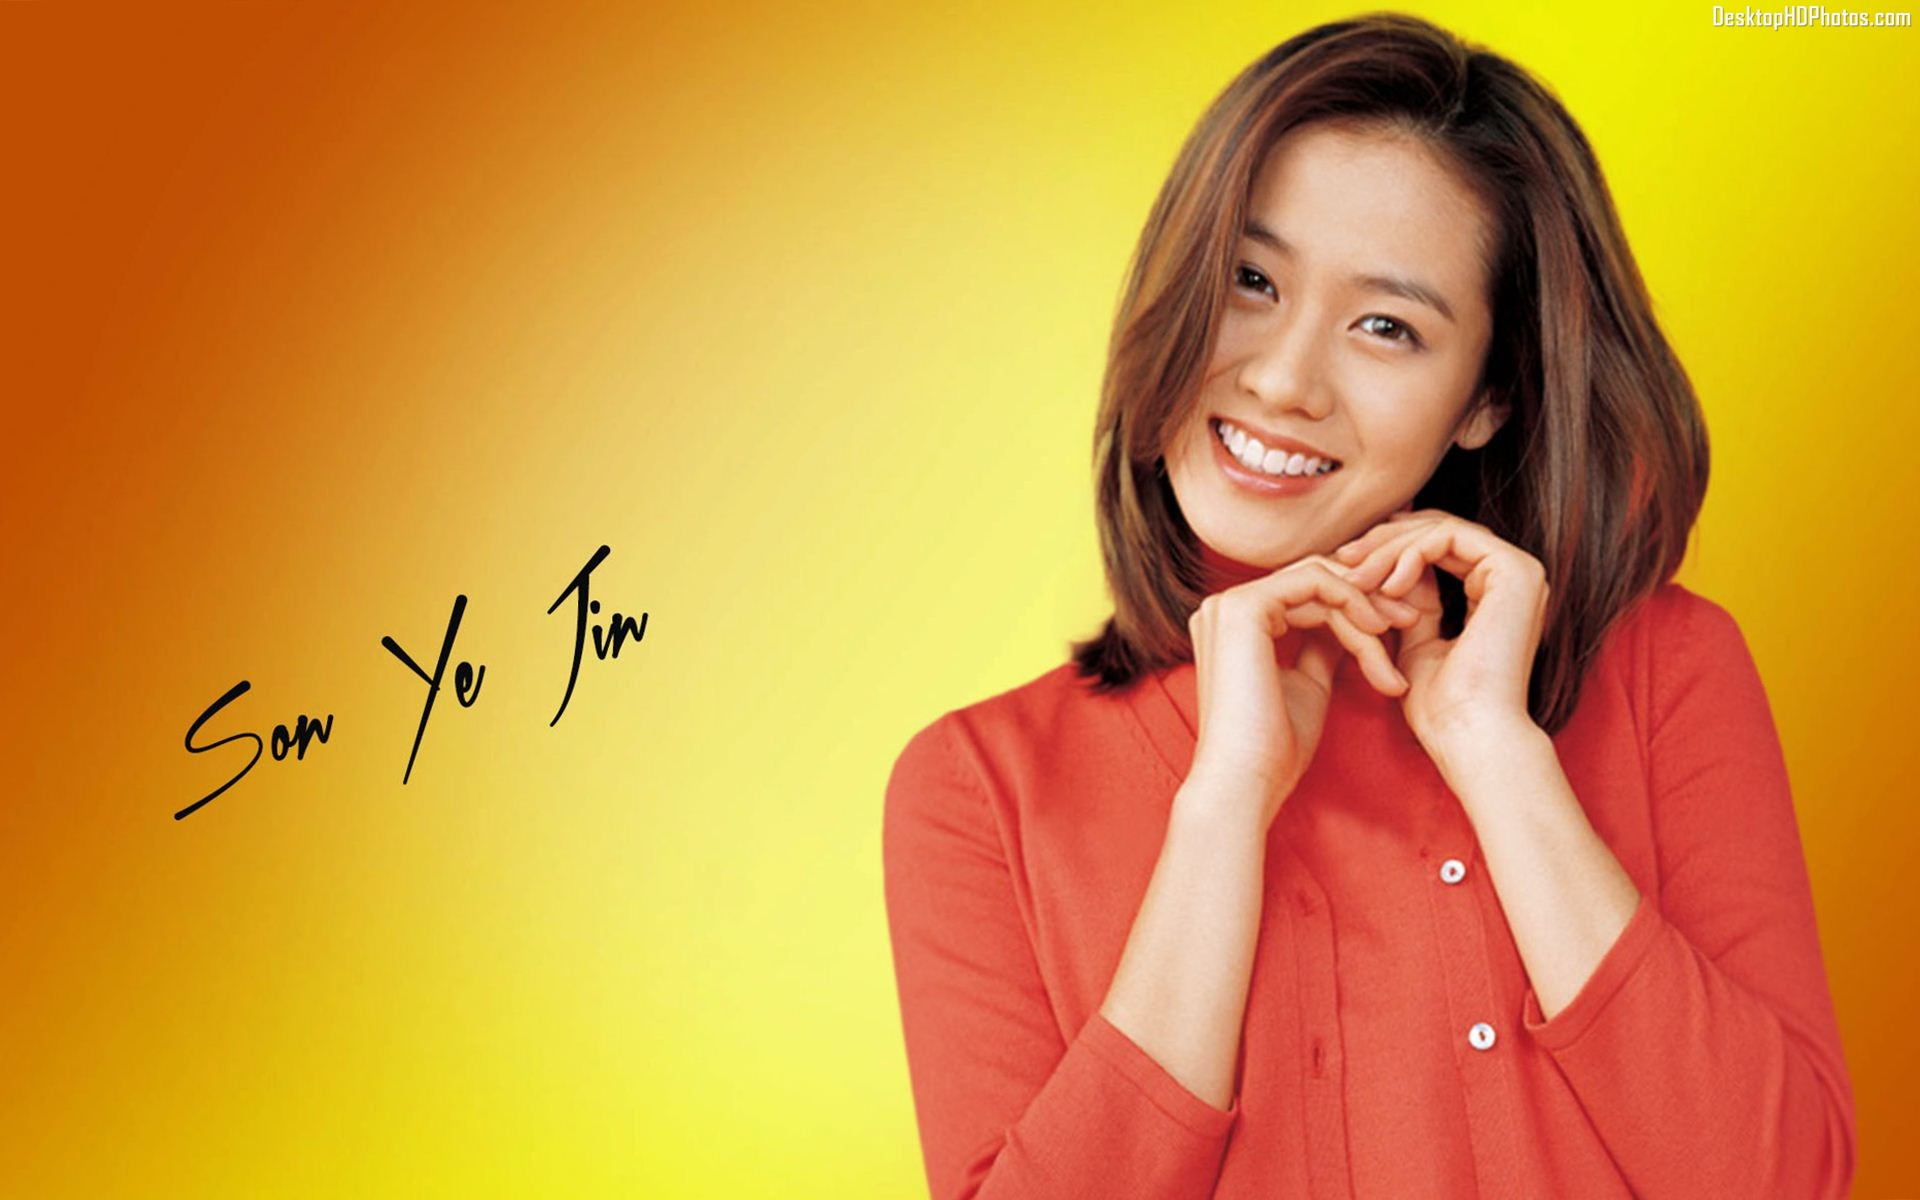 Hot Celebrity Wallpaper Pictures: Son Ye Jin